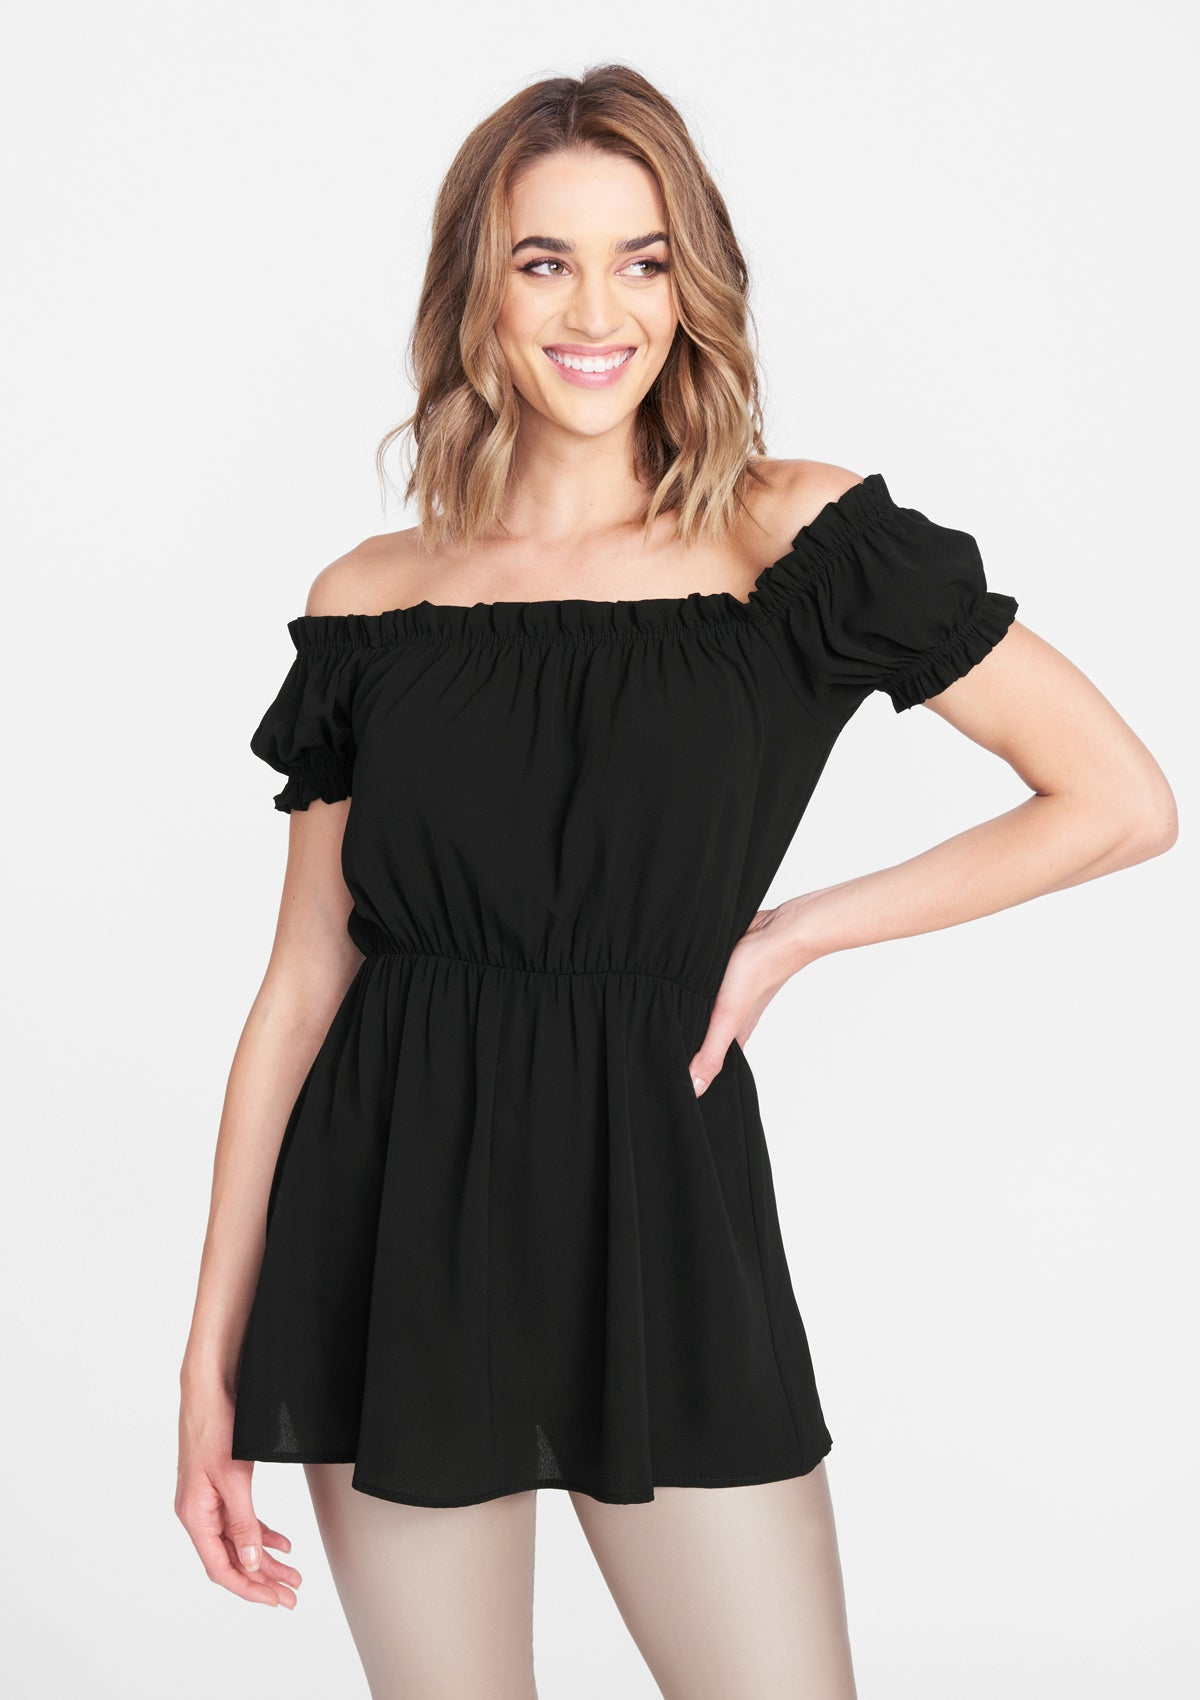 Alloy Apparel Tall Drop Shoulder Blouse for Women in Black Size S   Polyester